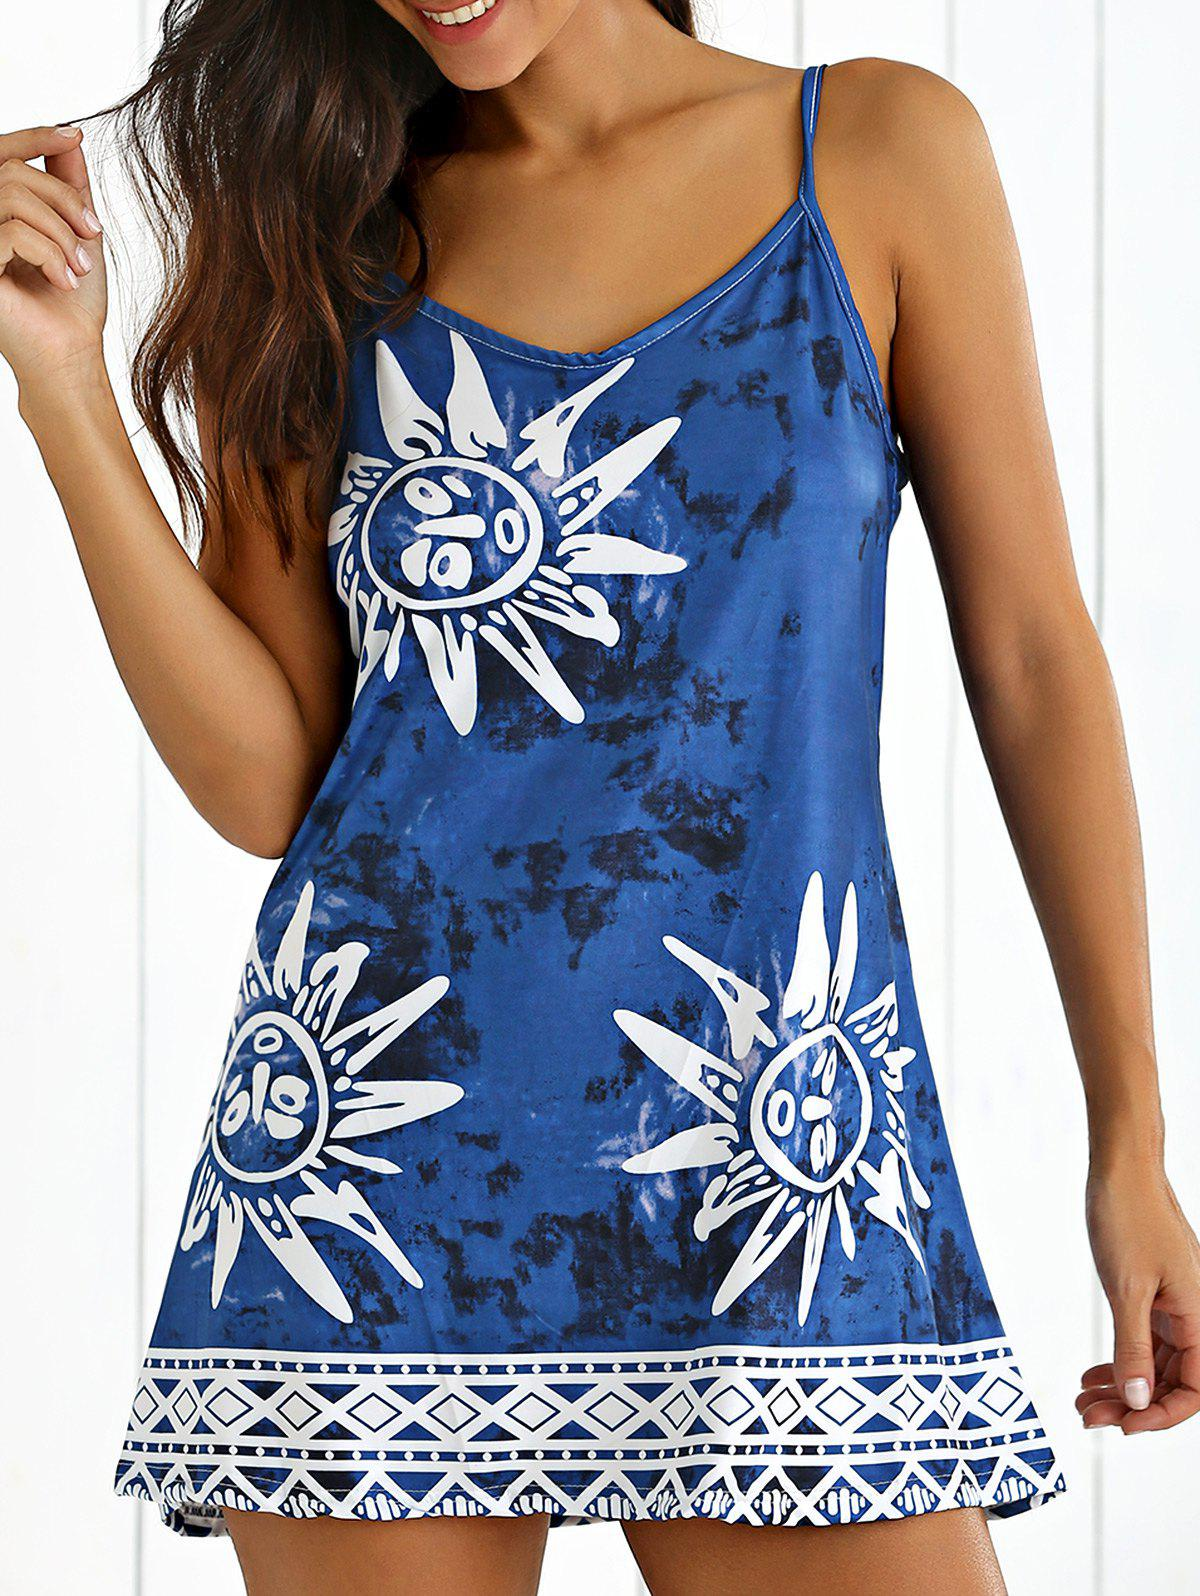 Tribal Print Tie-Dyed Summer Dress - CADETBLUE XL